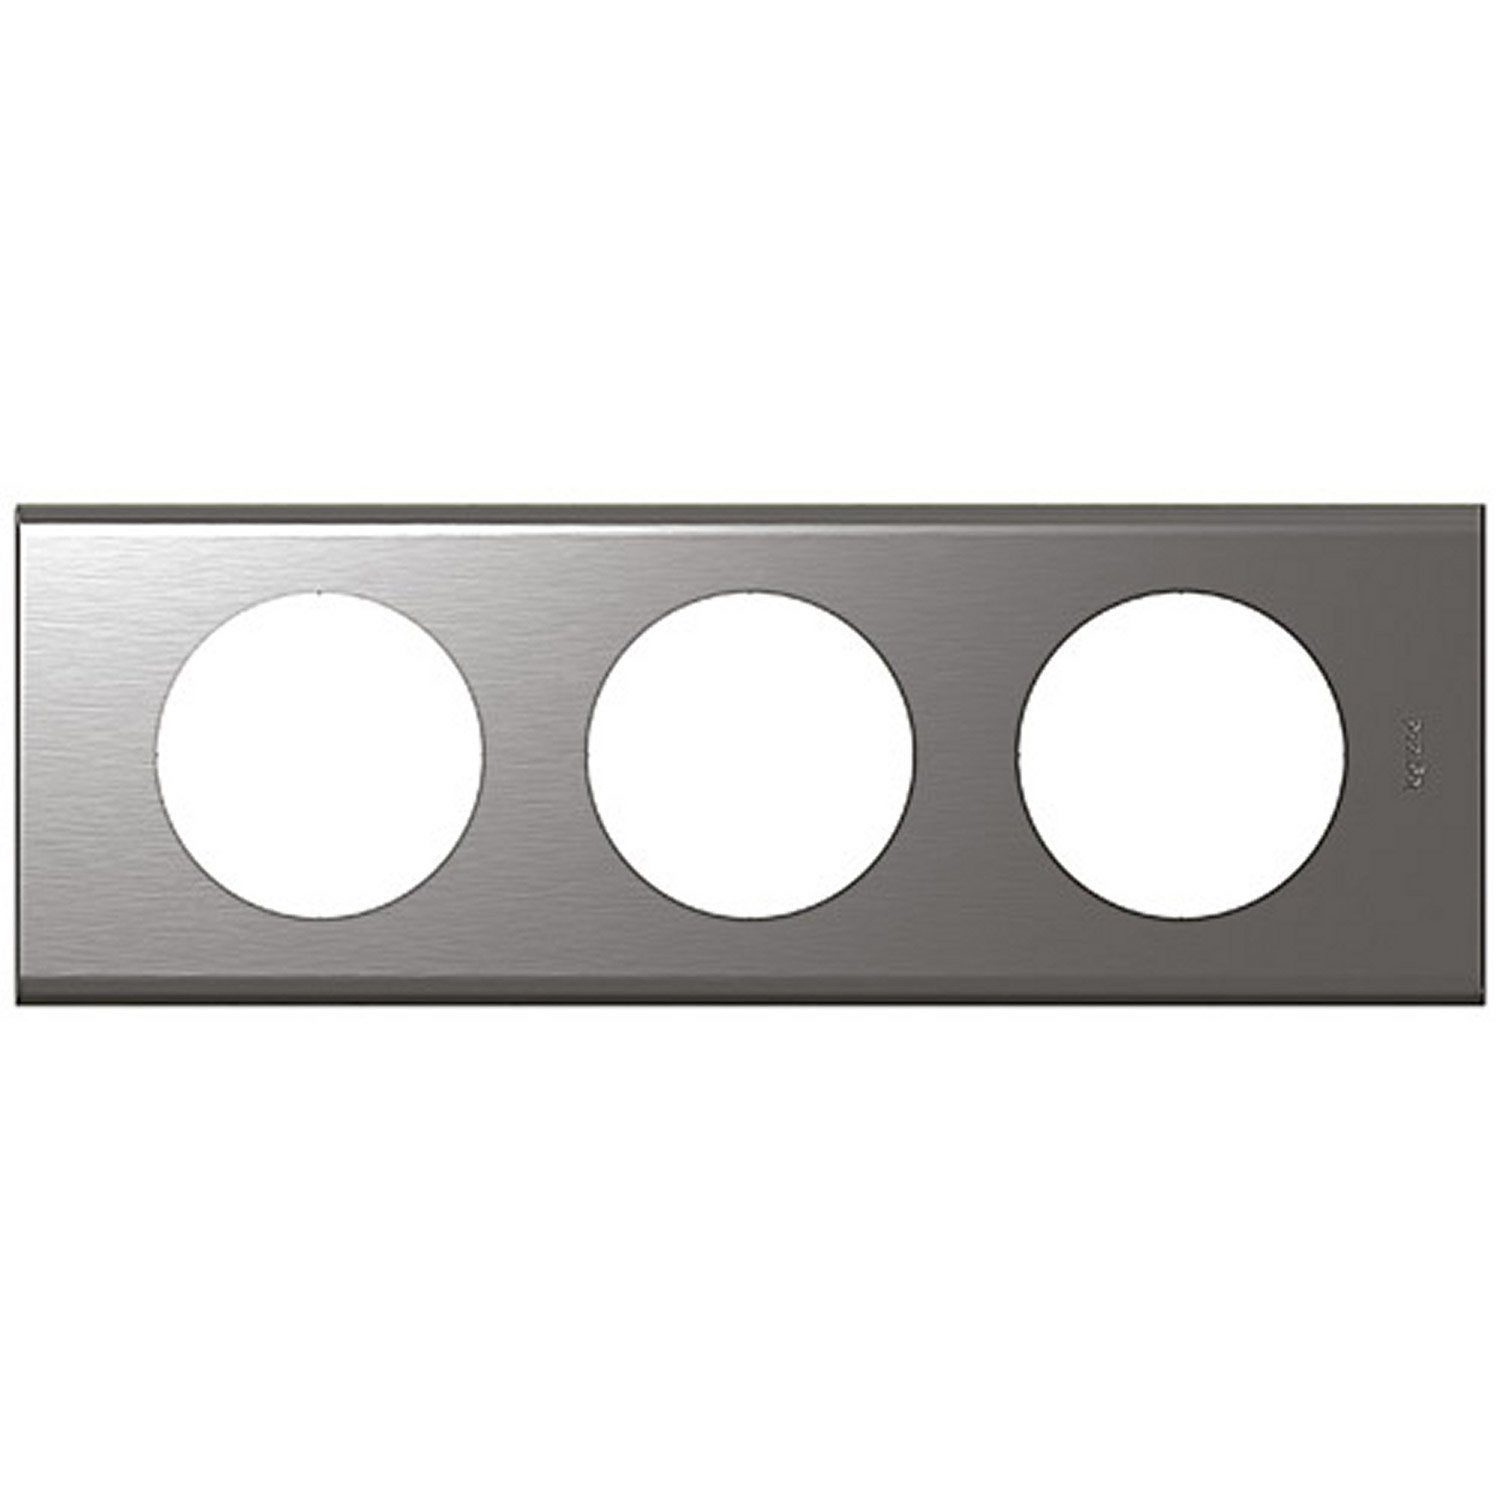 Plaque c liane legrand inox bross brillant leroy merlin - Plaque inox leroy merlin ...